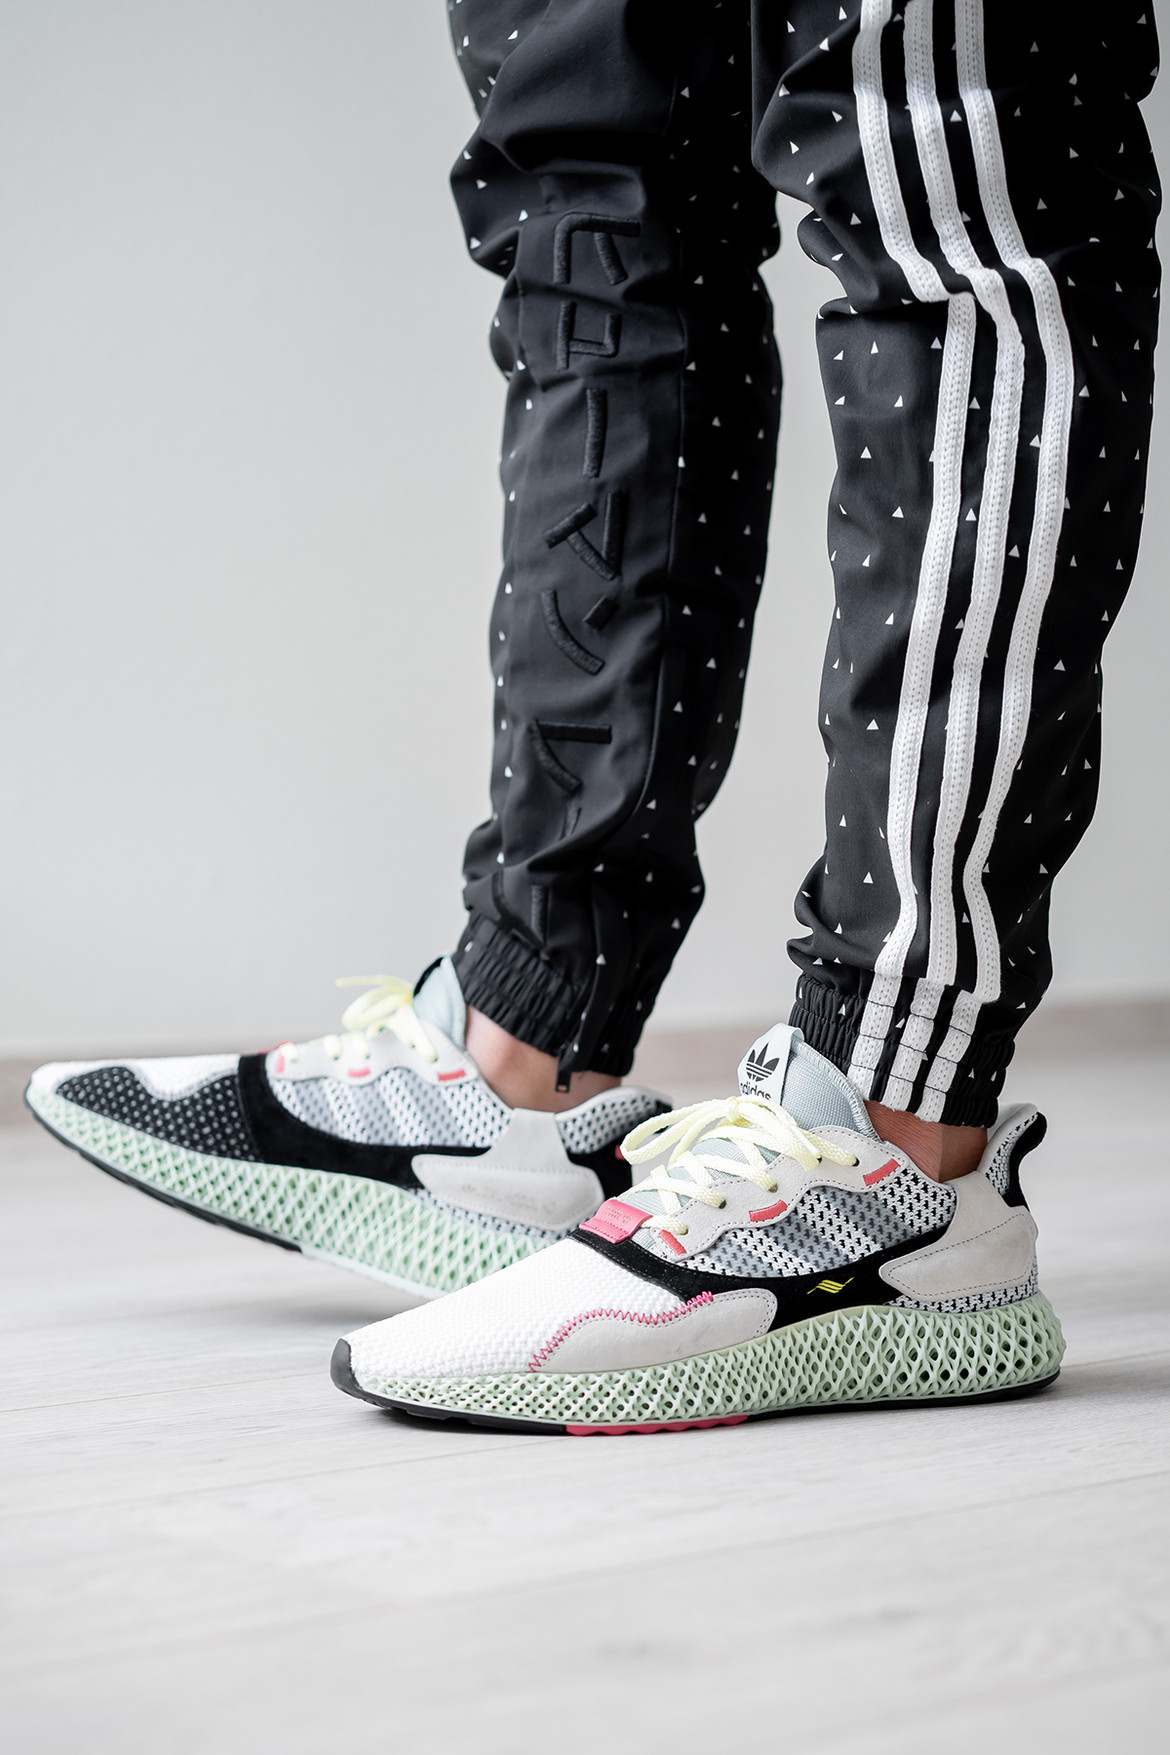 adidas ZX 4000 With 4D Sole Is Dropping November  482ebaabe